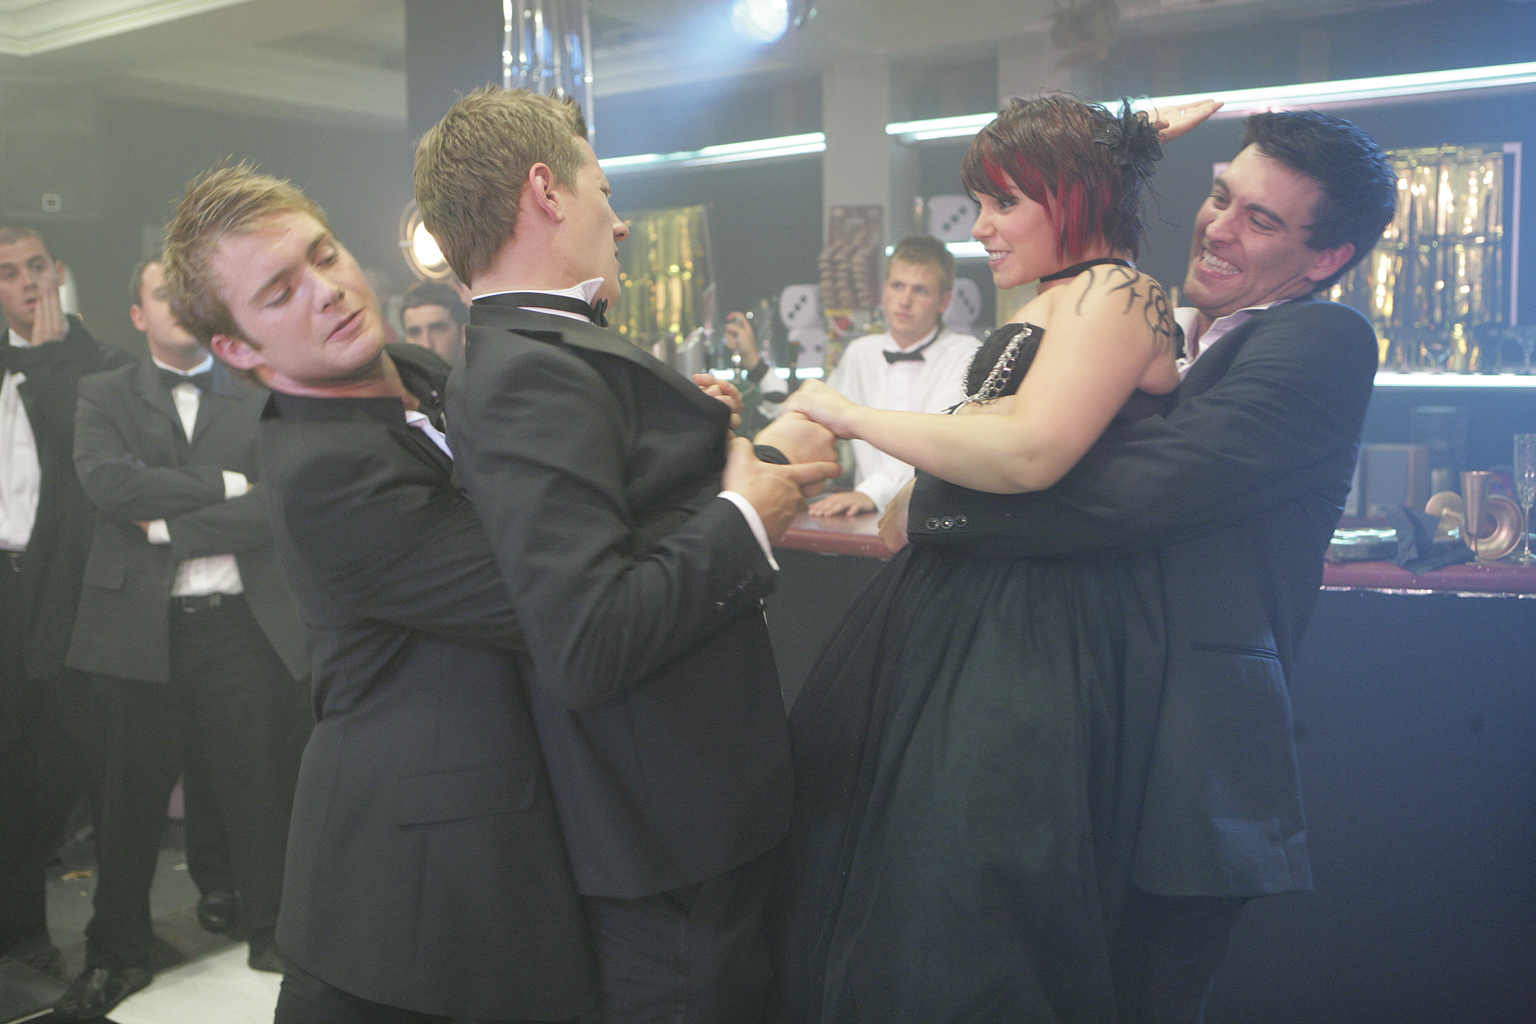 Tempers flare at the Freshers' Ball